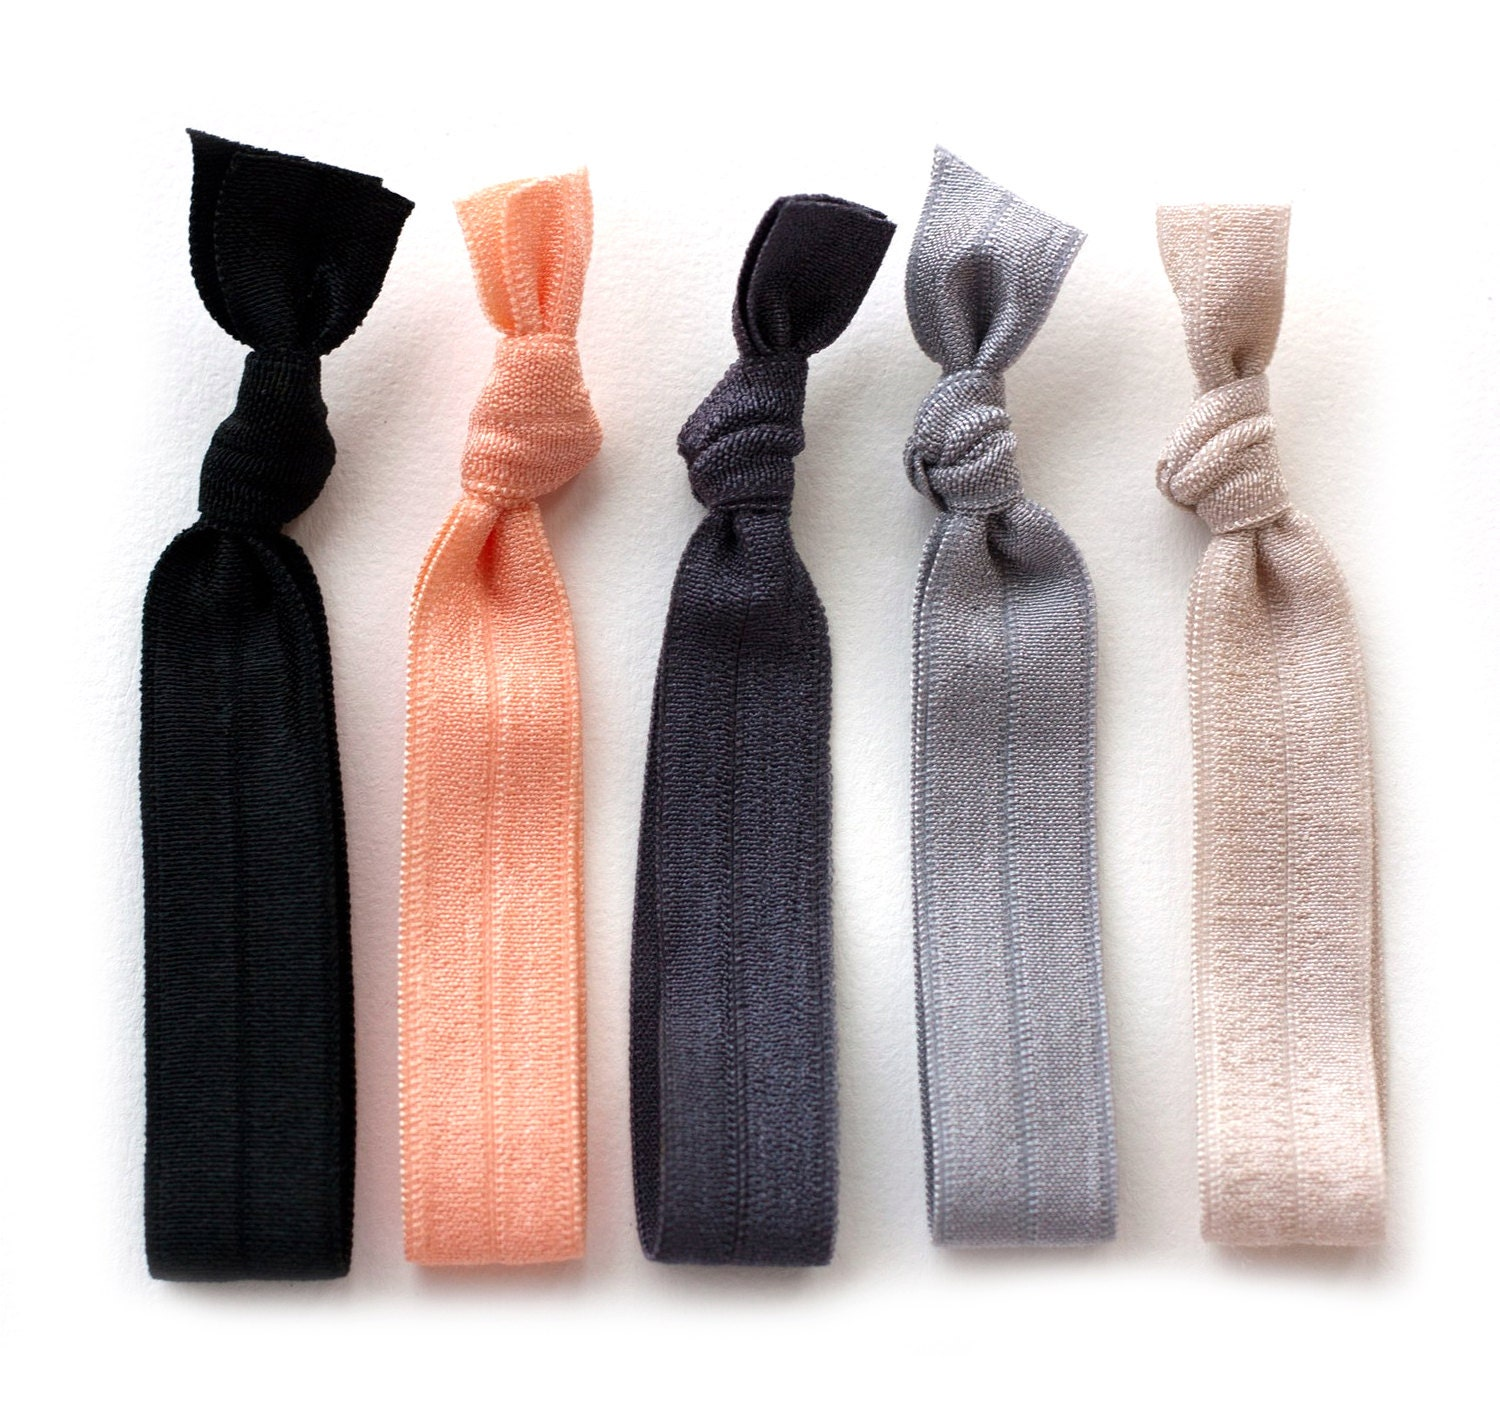 The Silk Hair Tie Package 5 Elastic Solid Color by ManeMessage